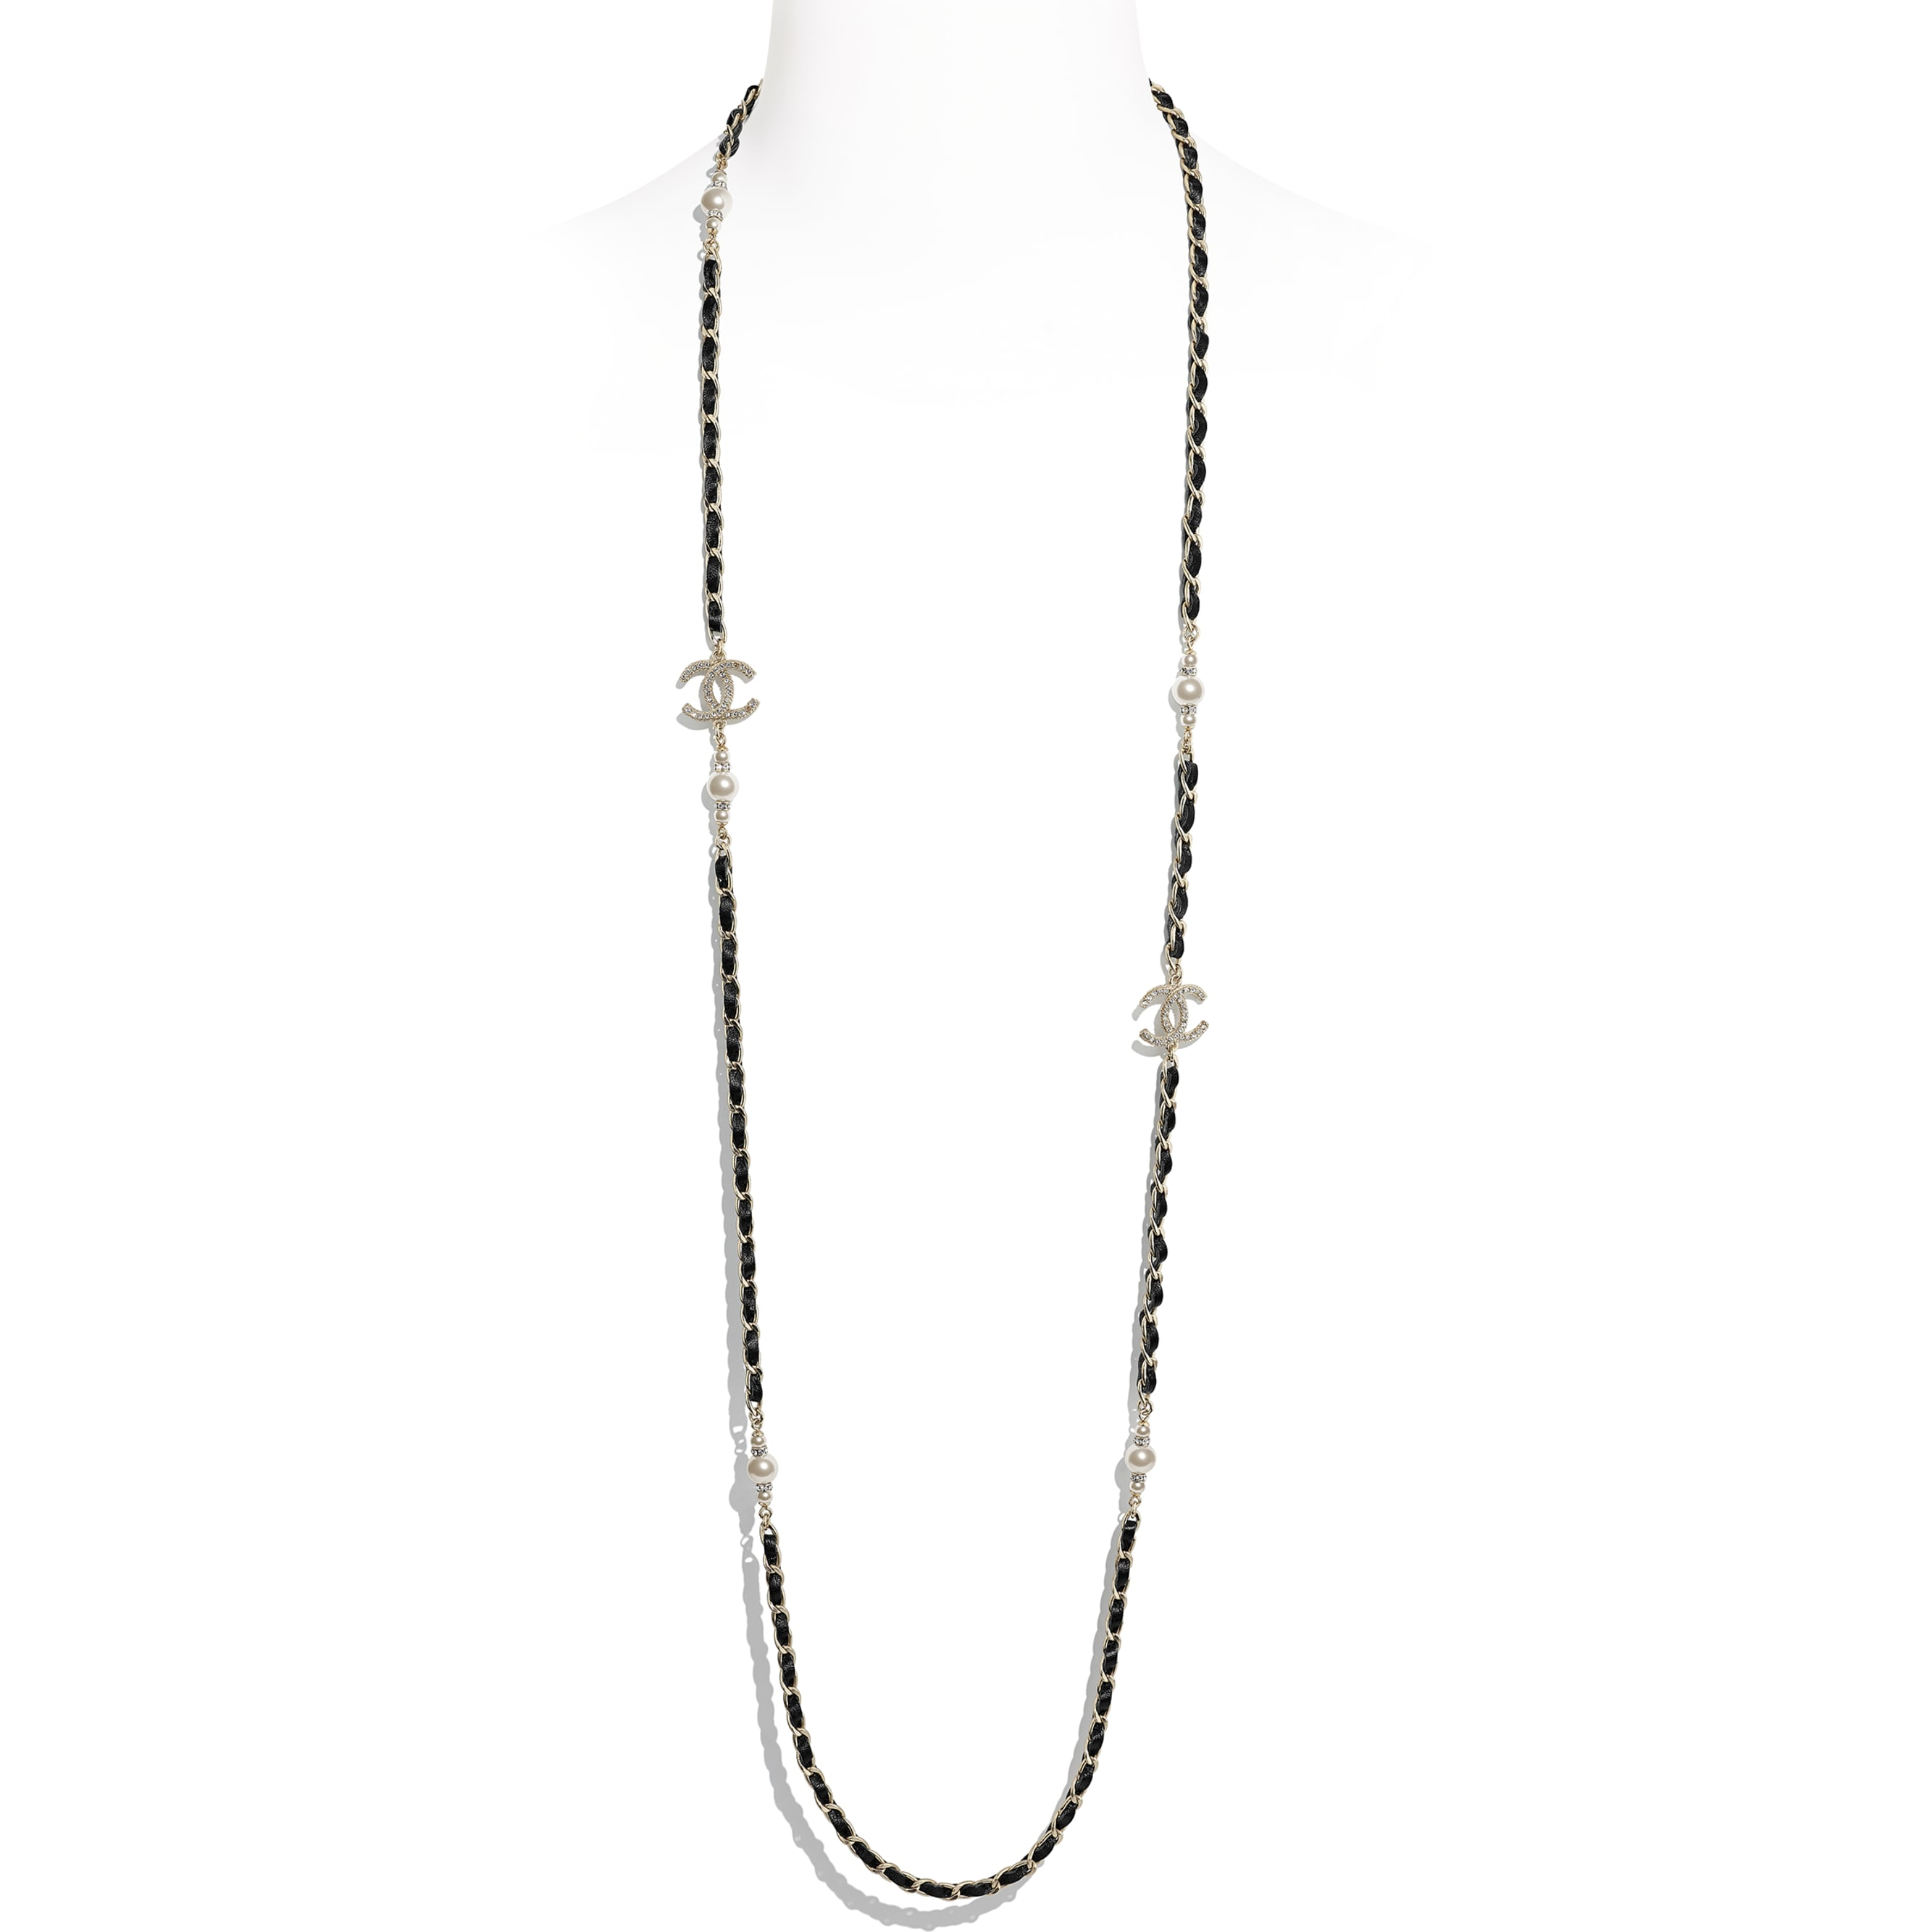 Long Necklace - Gold, Black, Pearly White & Crystal - Metal, Calfskin, Glass Pearls & Strass - CHANEL - Default view - see standard sized version